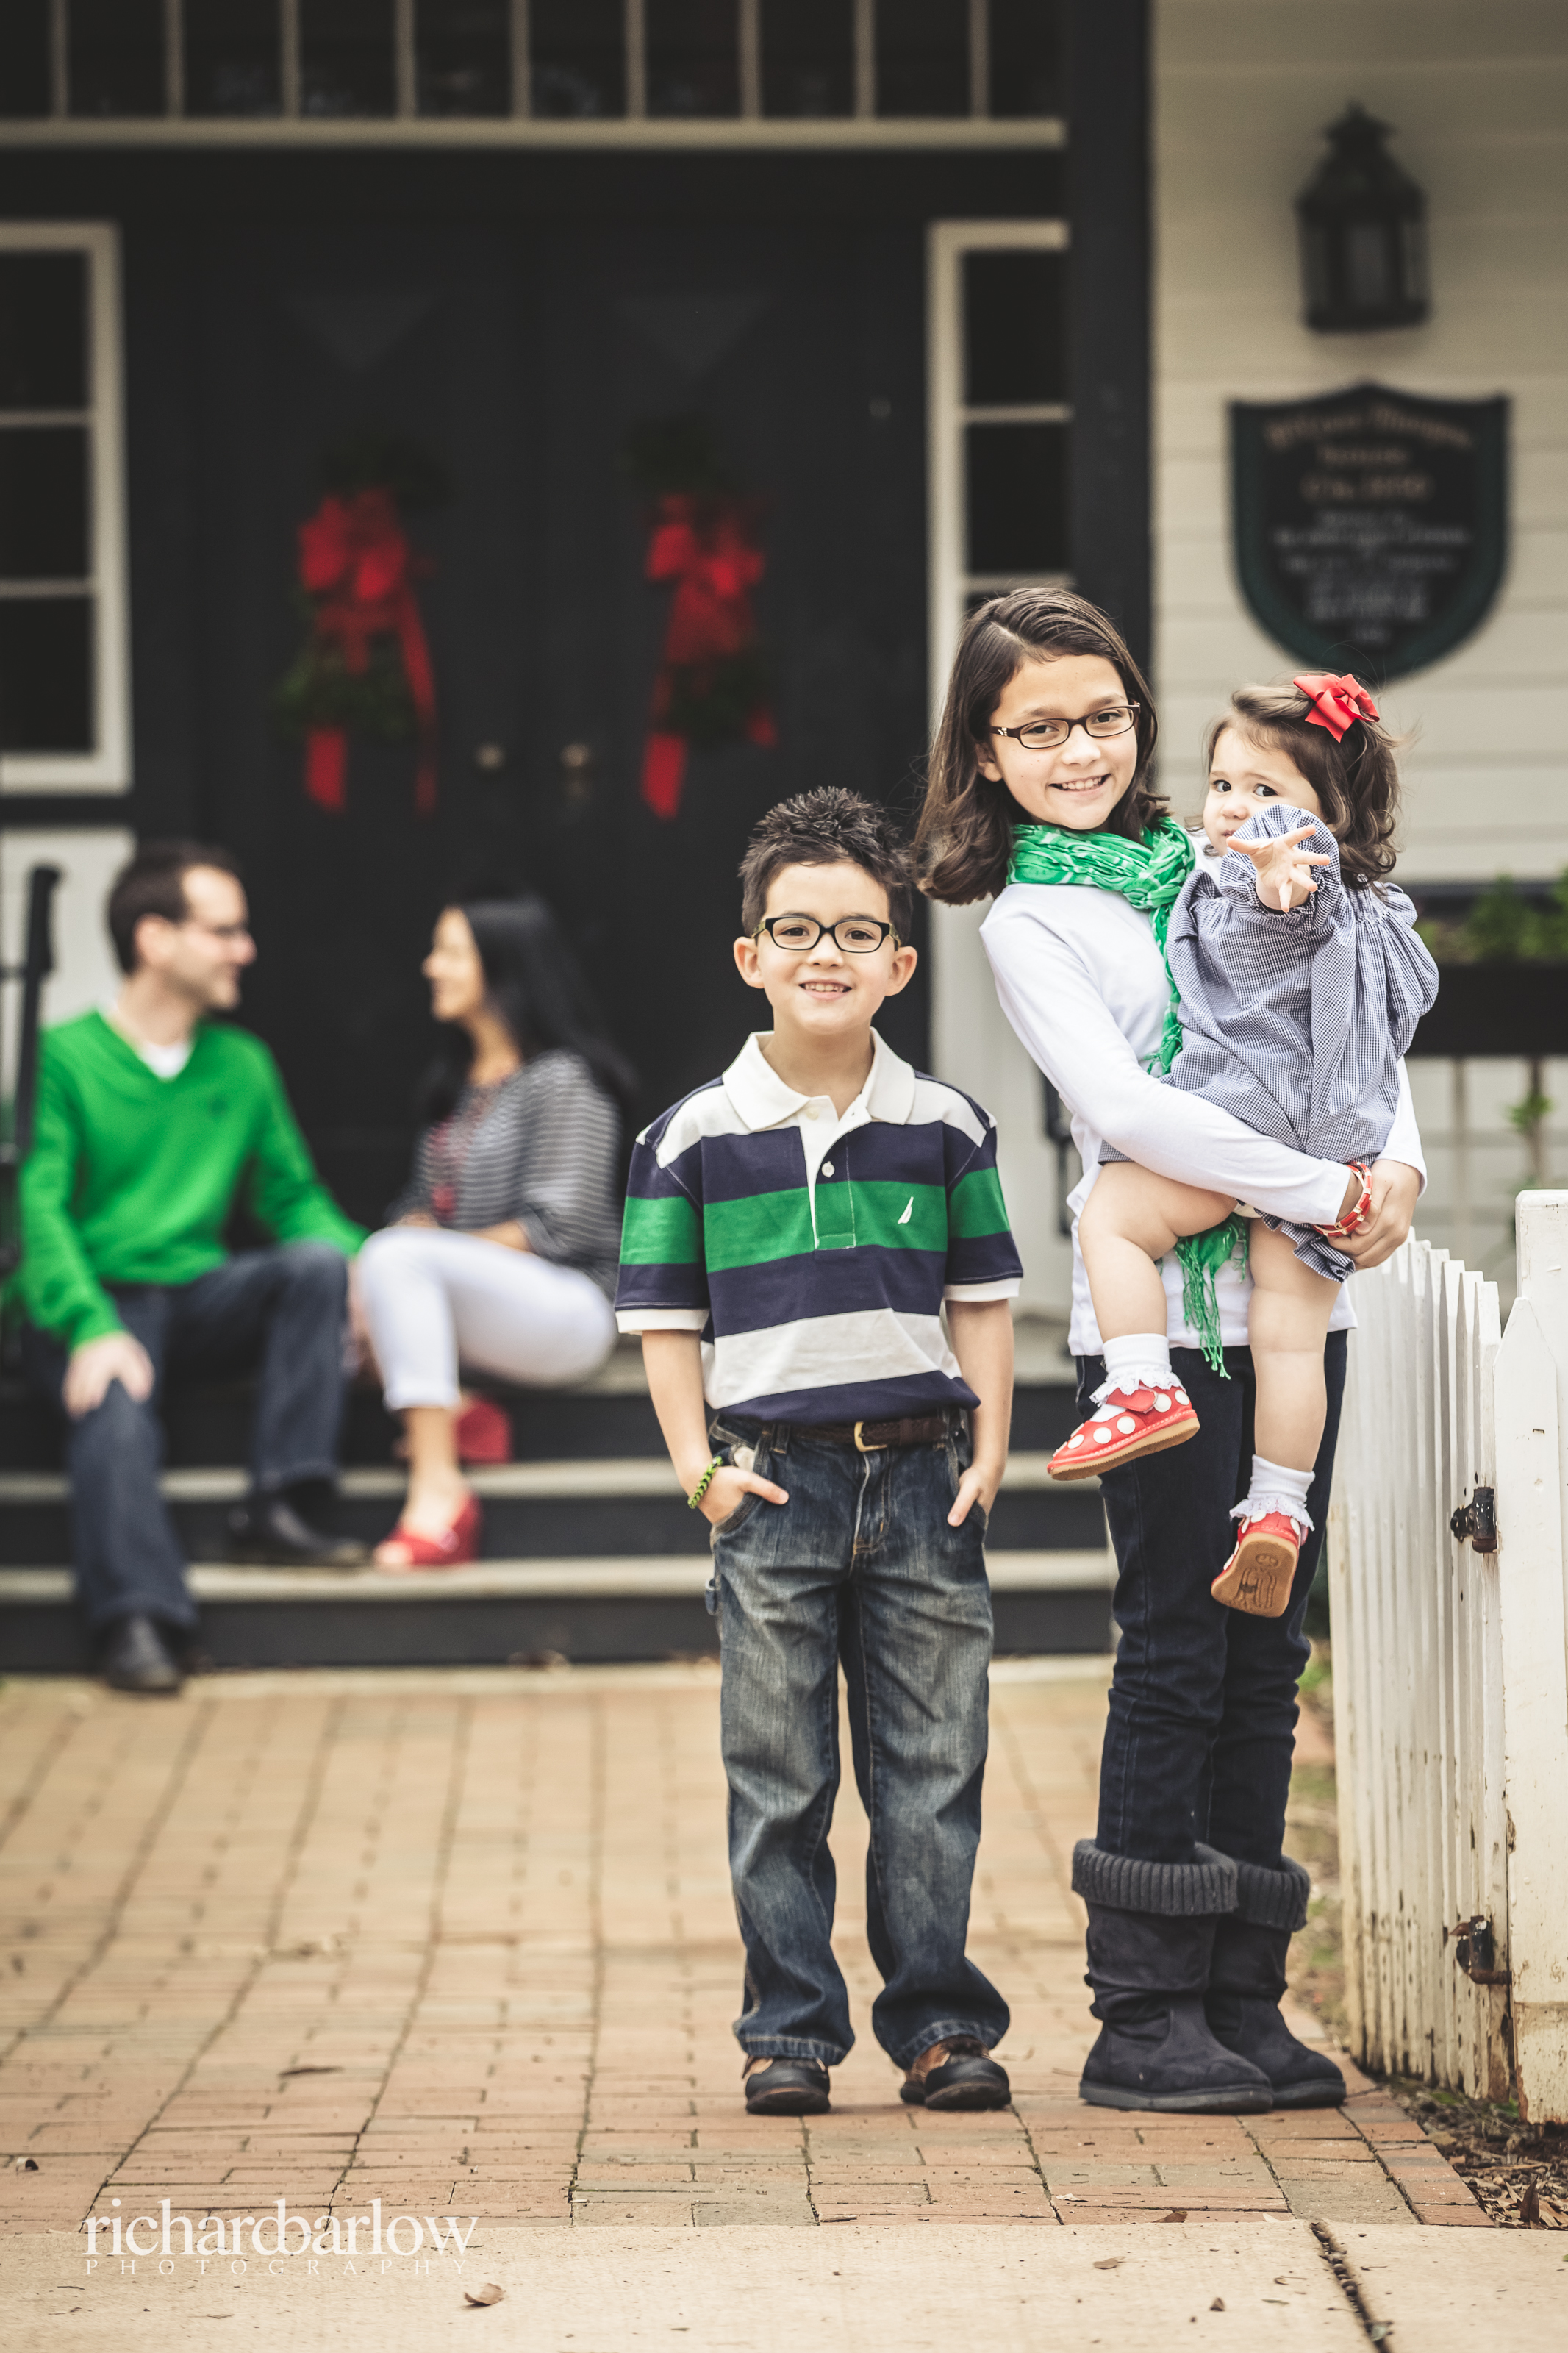 richard barlow photography - Lambert Family Session-4.jpg